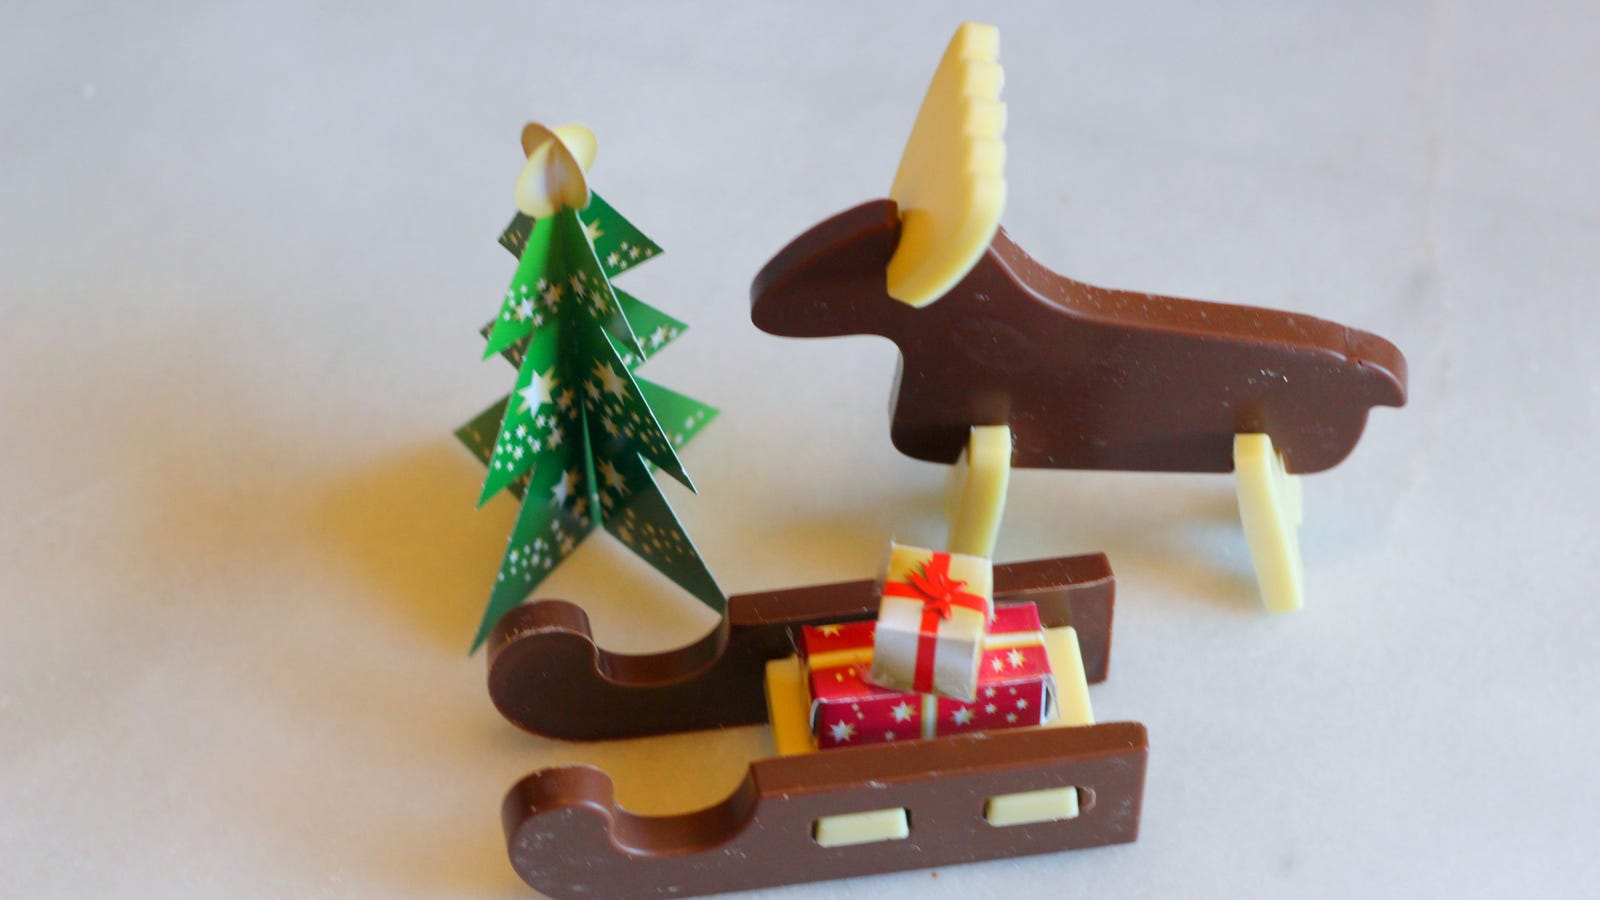 Chocolate Reindeer and Sled Kit ($1.99)